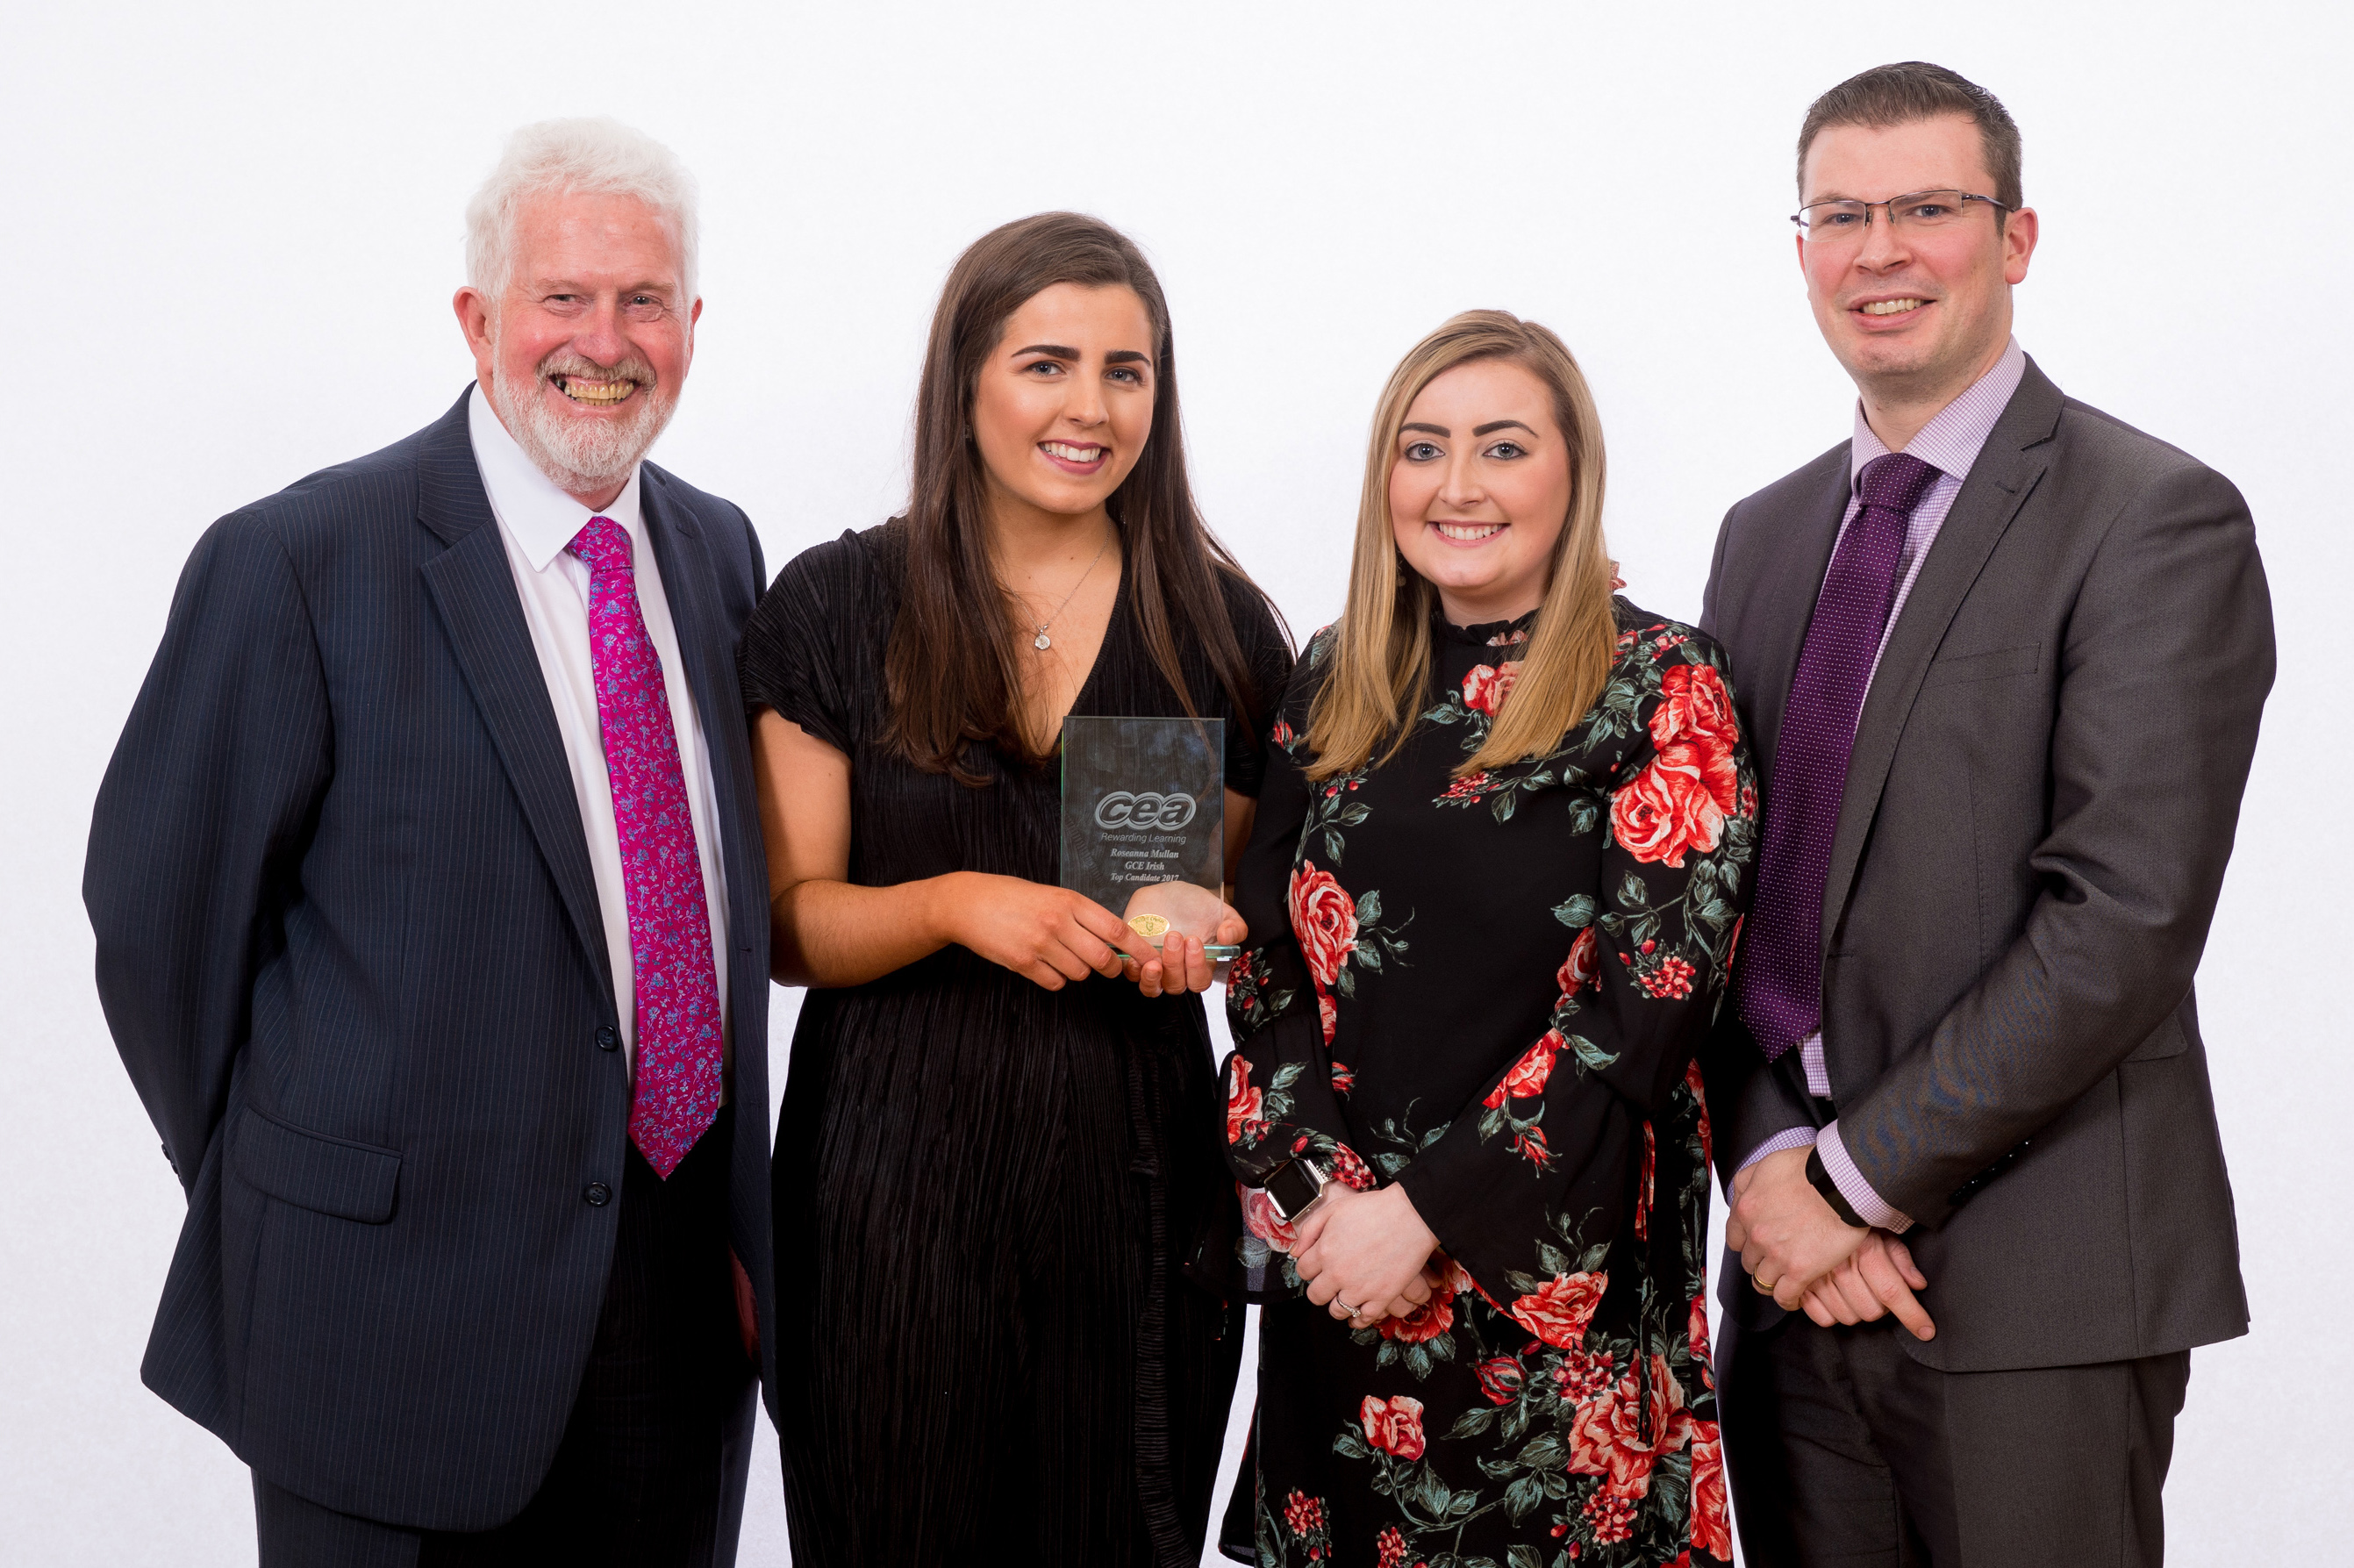 CCEA Chairman Trevor Carson pictured with Roseanna Mullan who was placed First in Irish at A-Level and her teachers Miss M. McGouran and Mr W. Mcphillomey.